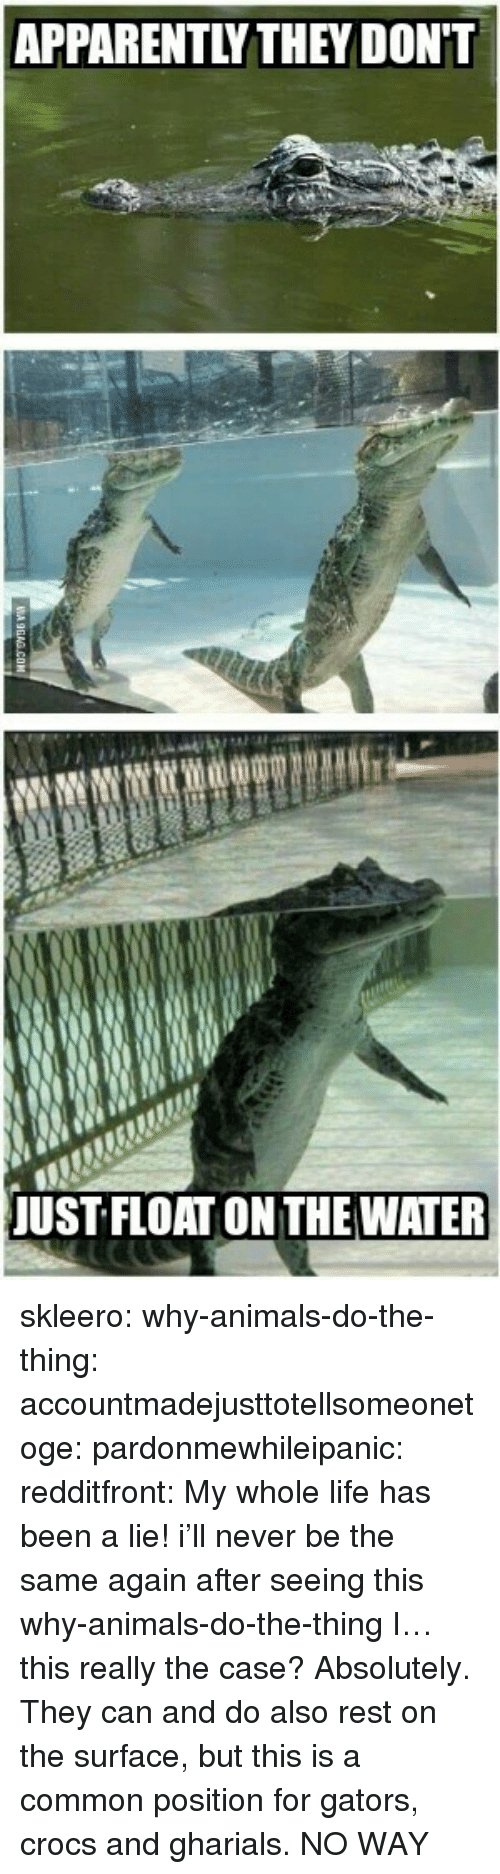 Animals, Apparently, and Crocs: APPARENTLY THEYDON'T  UST FLOAT ON THE WATER skleero:  why-animals-do-the-thing:  accountmadejusttotellsomeonetoge:  pardonmewhileipanic:  redditfront:  My whole life has been a lie!  i'll never be the same again after seeing this  why-animals-do-the-thing I…this really the case?  Absolutely. They can and do also rest on the surface, but this is a common position for gators, crocs and gharials.  NO WAY